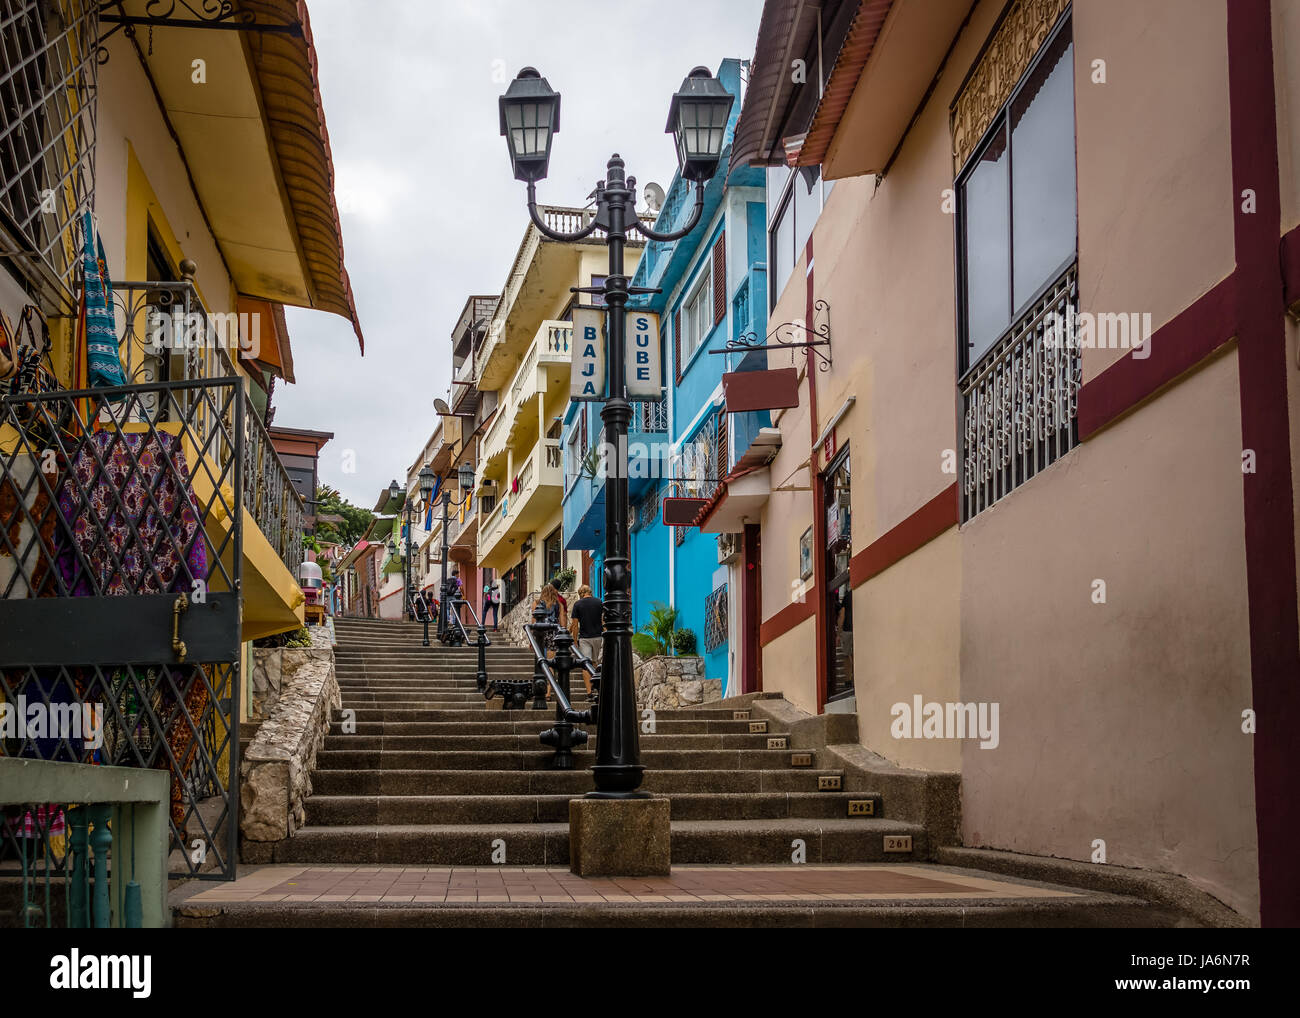 Buildings of Santa Ana Hill and its 444 stairs to the top - Guayaquil, Ecuador - Stock Image